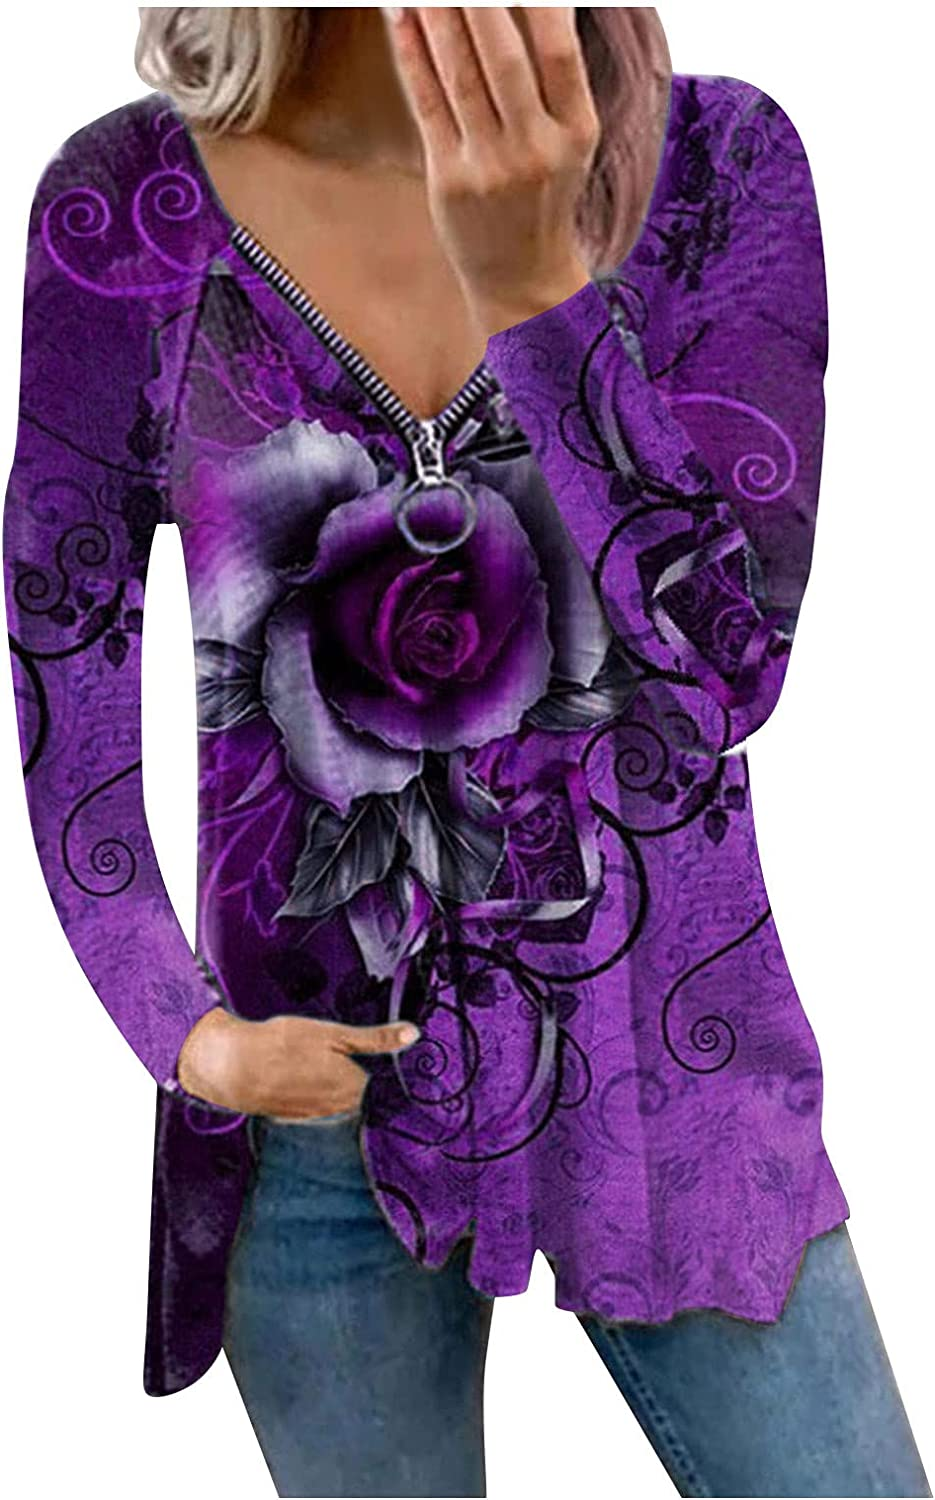 Plus Size Tops for Women Sexy, Womens Fashion V Neck Tie Dye Zipper Pullover Sweatshirts Loose Casual Shirts Blouse Purple